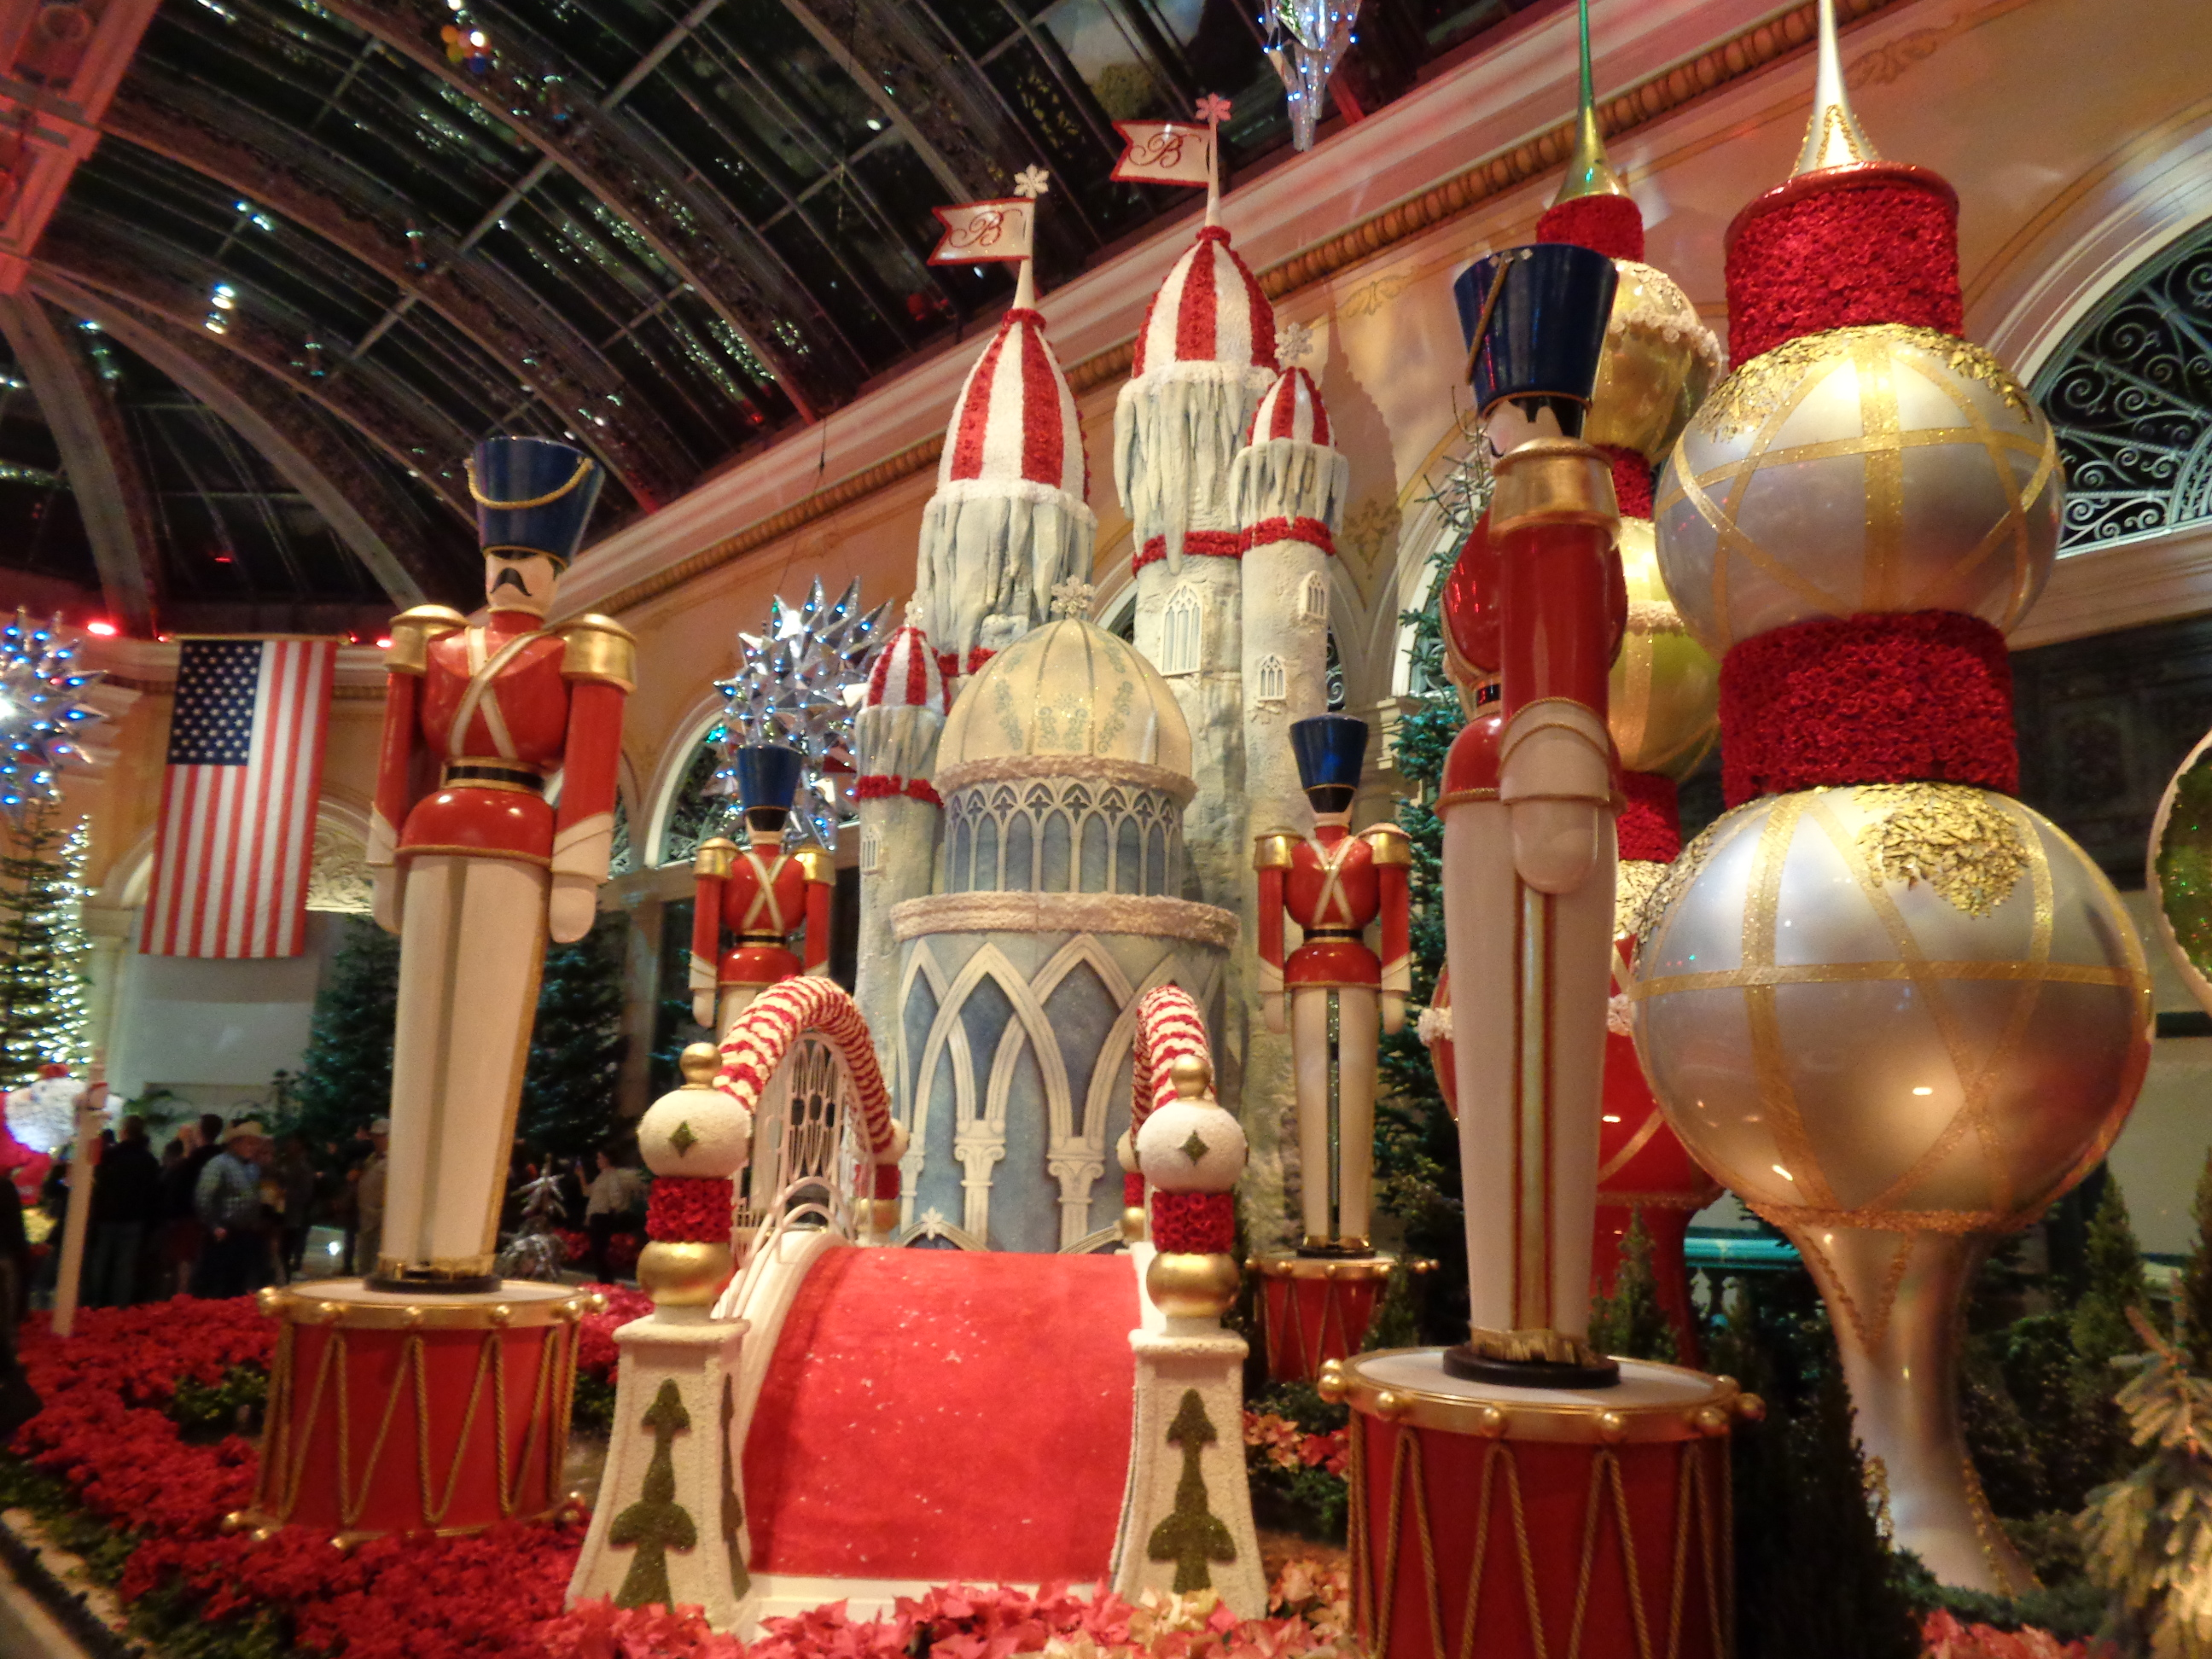 Las Vegas Holiday Christmas Displays 2018 Vegaschanges